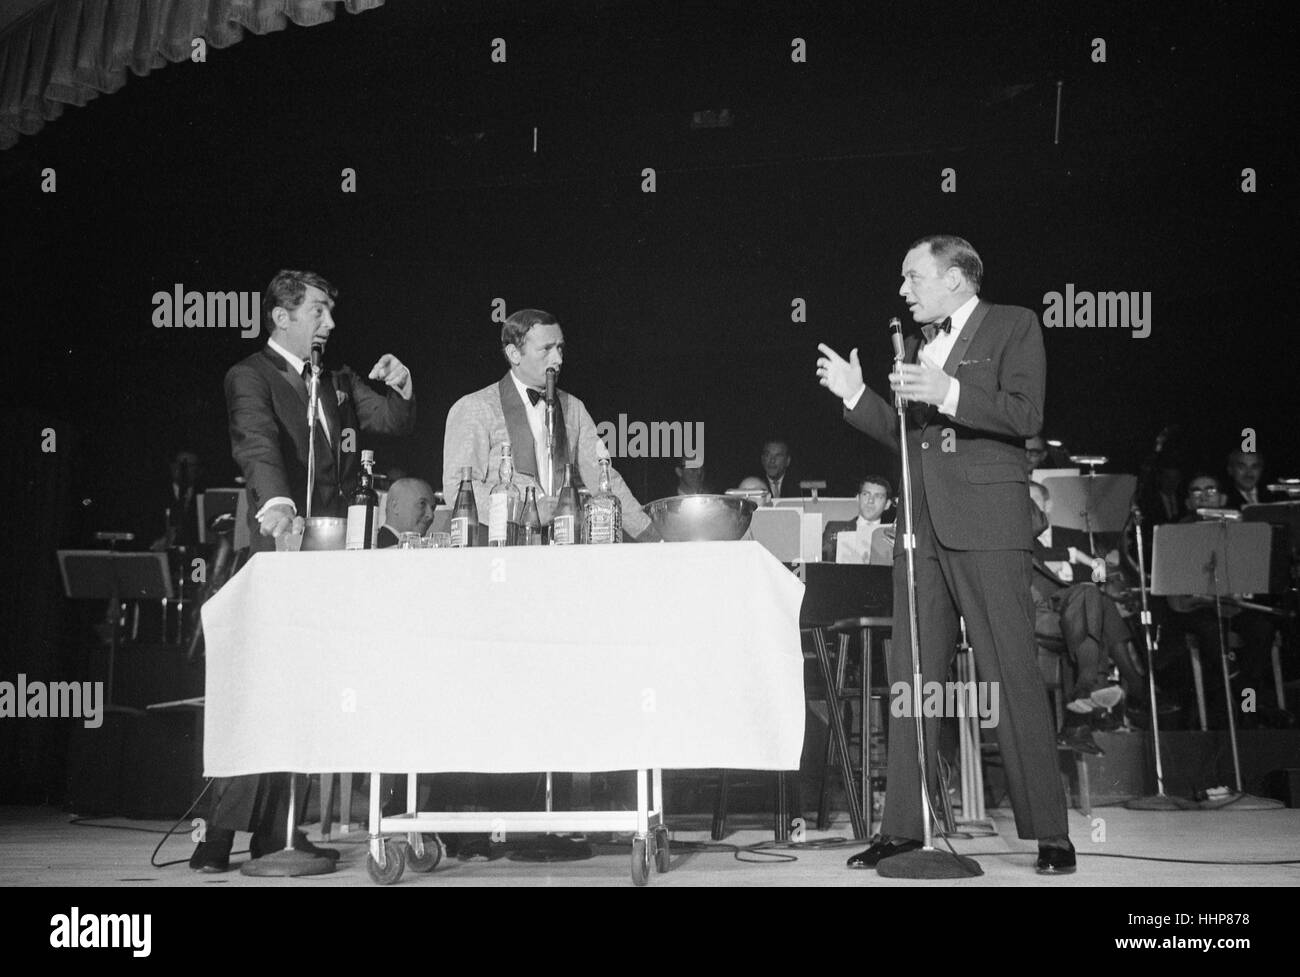 Dean Martin, Joey Bishop, and Frank Sinatra on stage - Stock Image